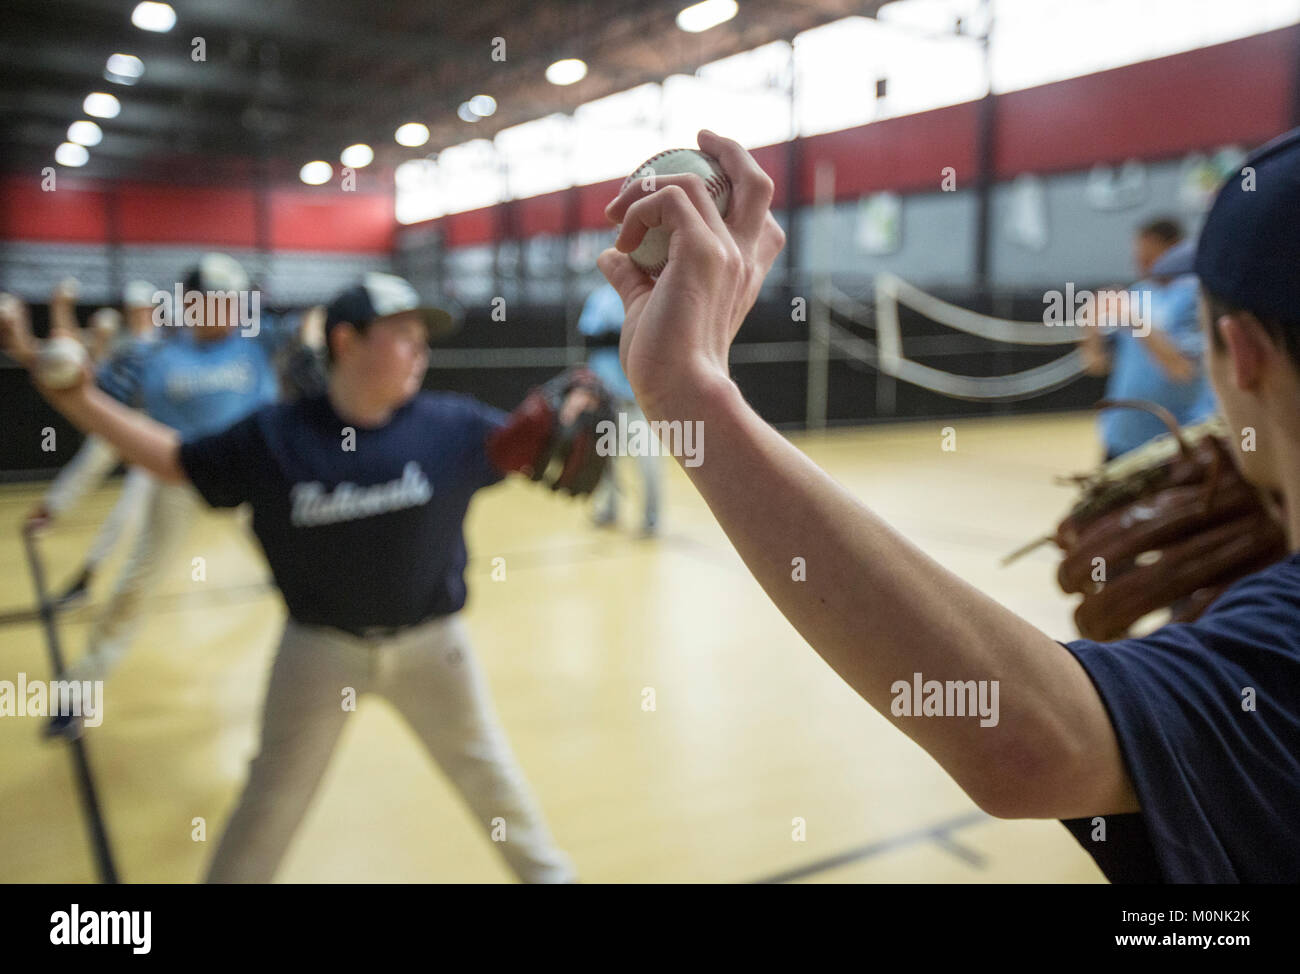 Pitchers training at an indoor training facility in New Jersey - Stock Image